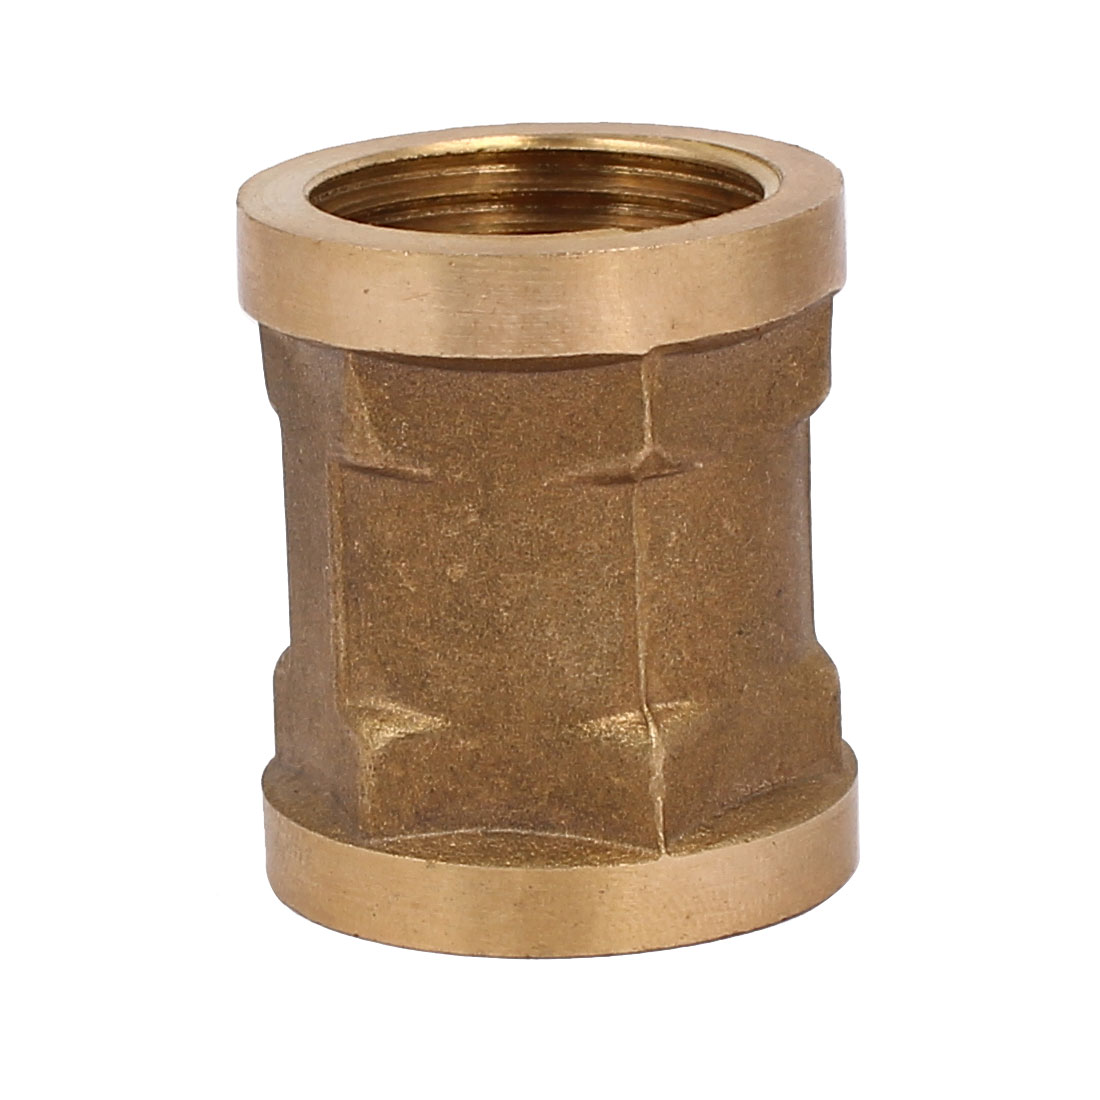 1/2BSP Female Thread Brass Straight Double Pass Connector Pipe Fitting Coupler - image 1 of 3